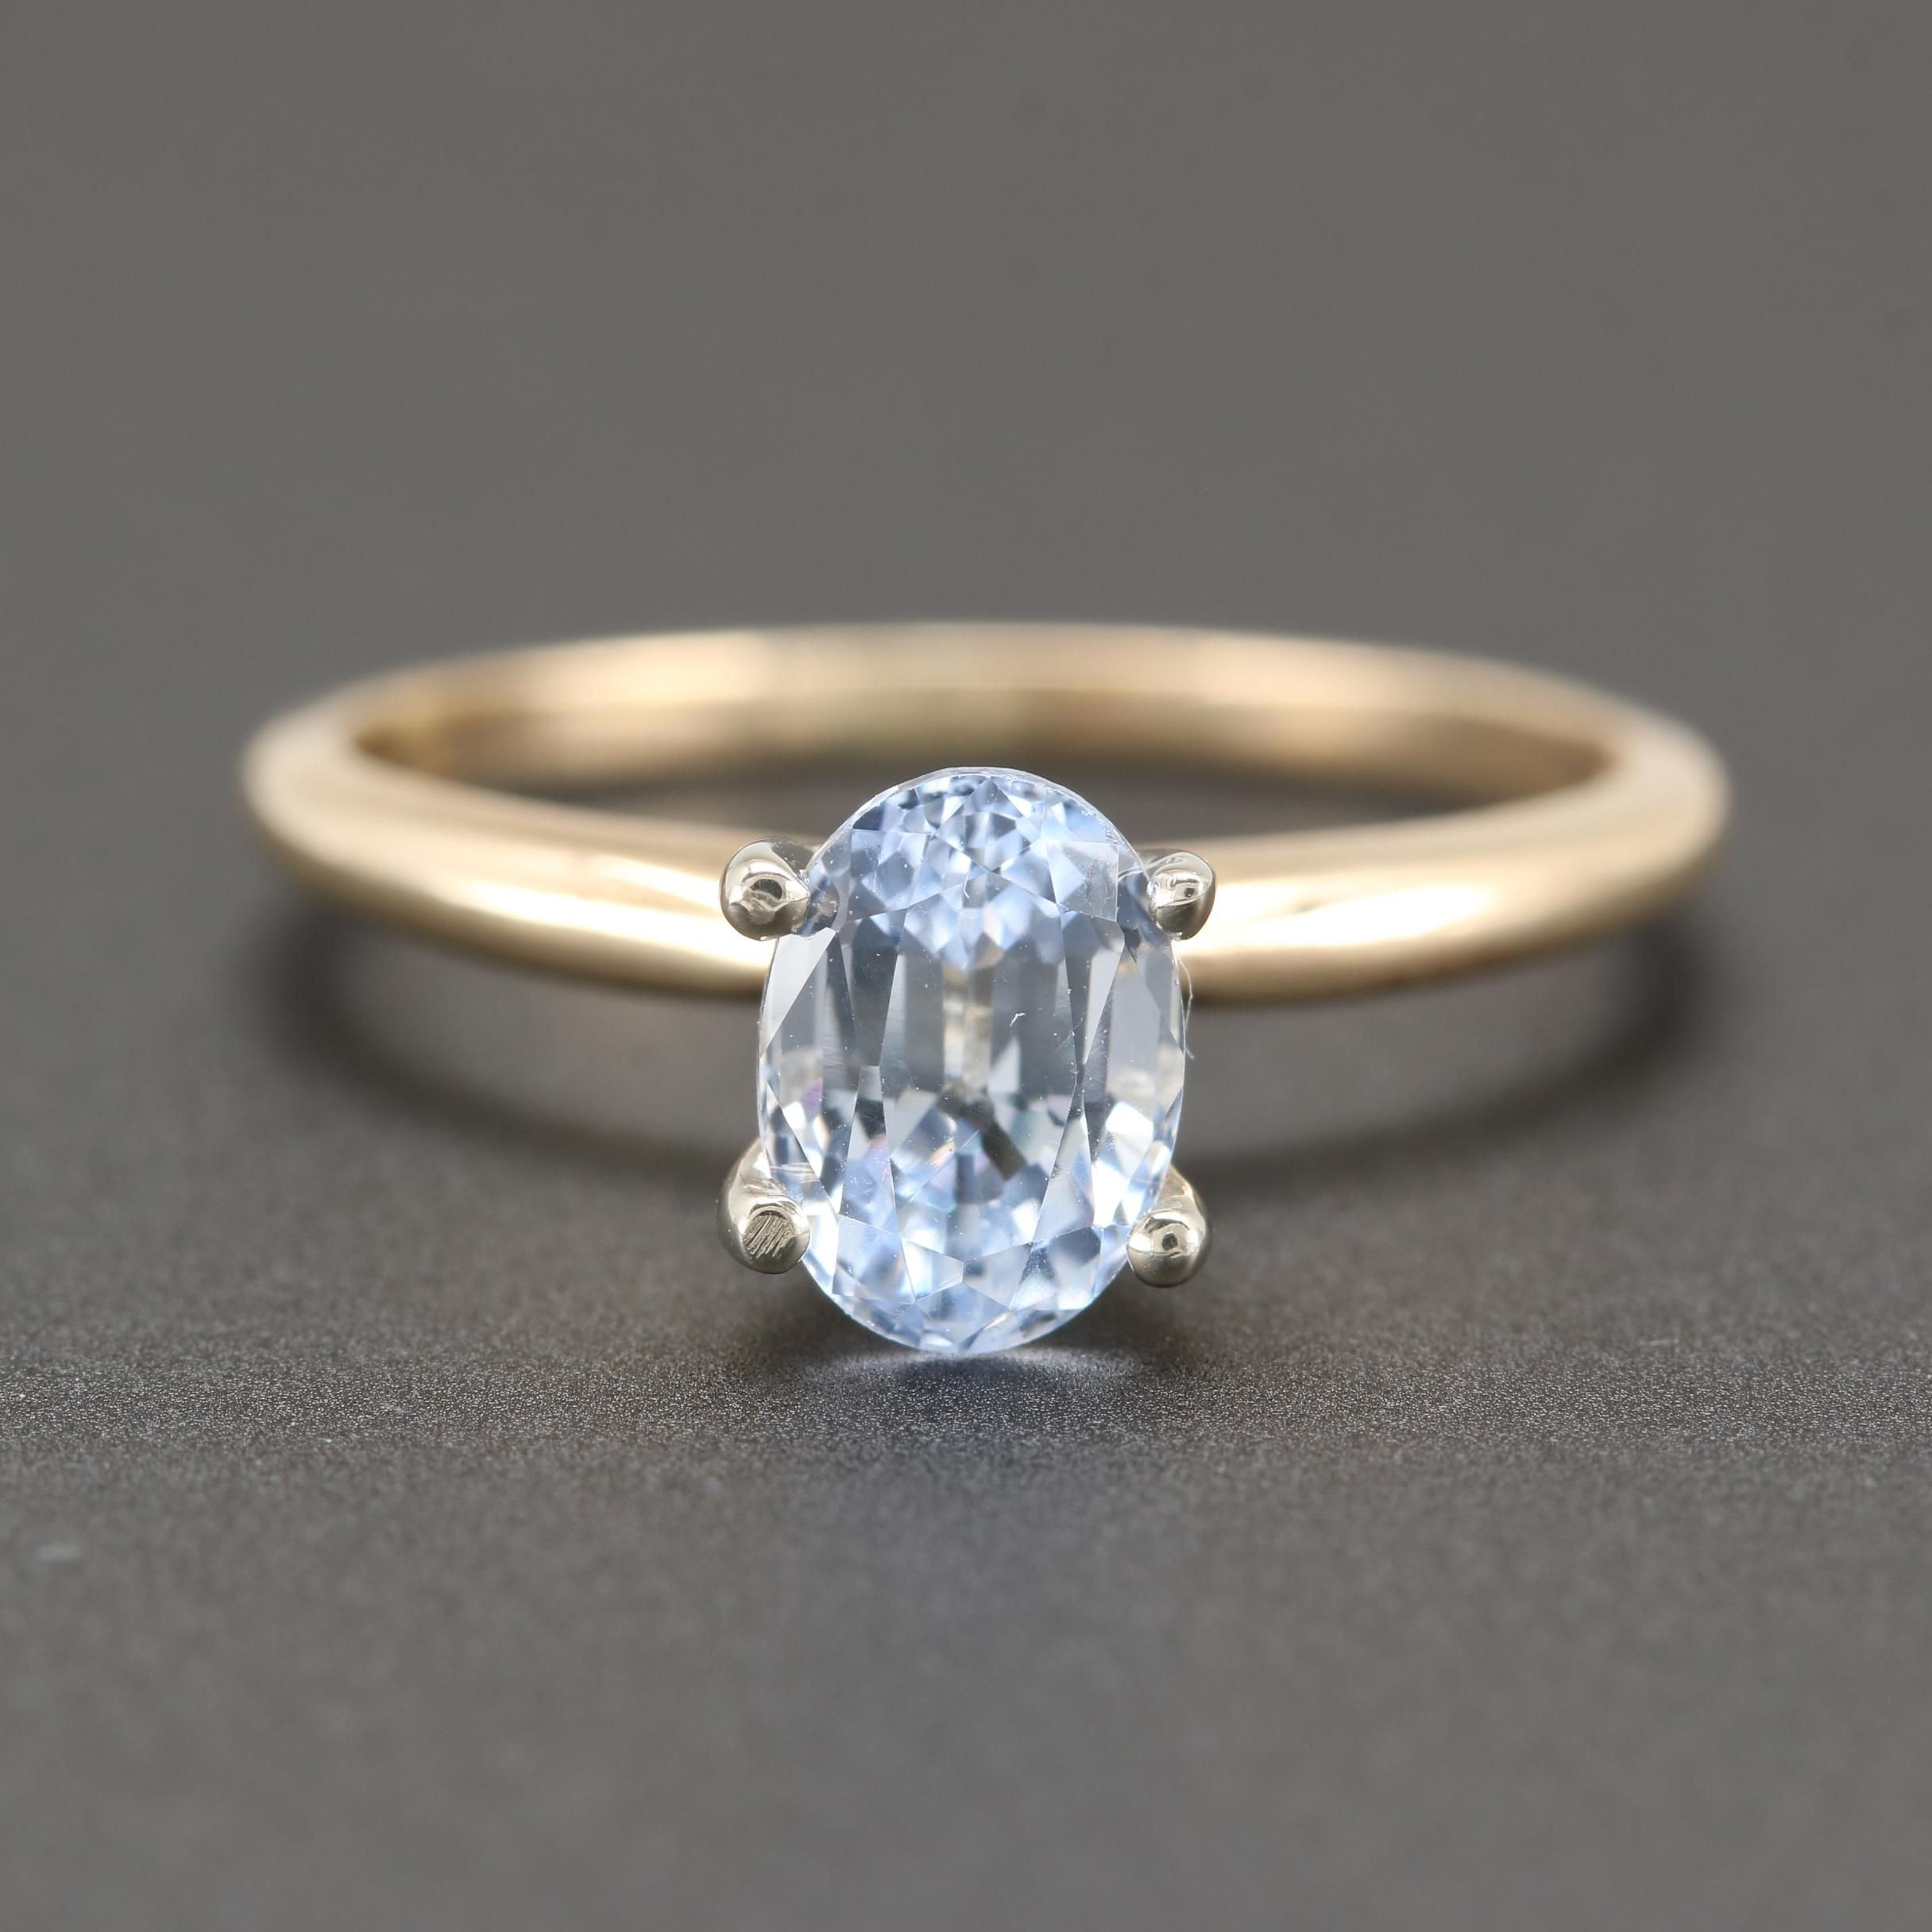 14K Yellow Gold 1.19 CT Sapphire Solitaire Ring